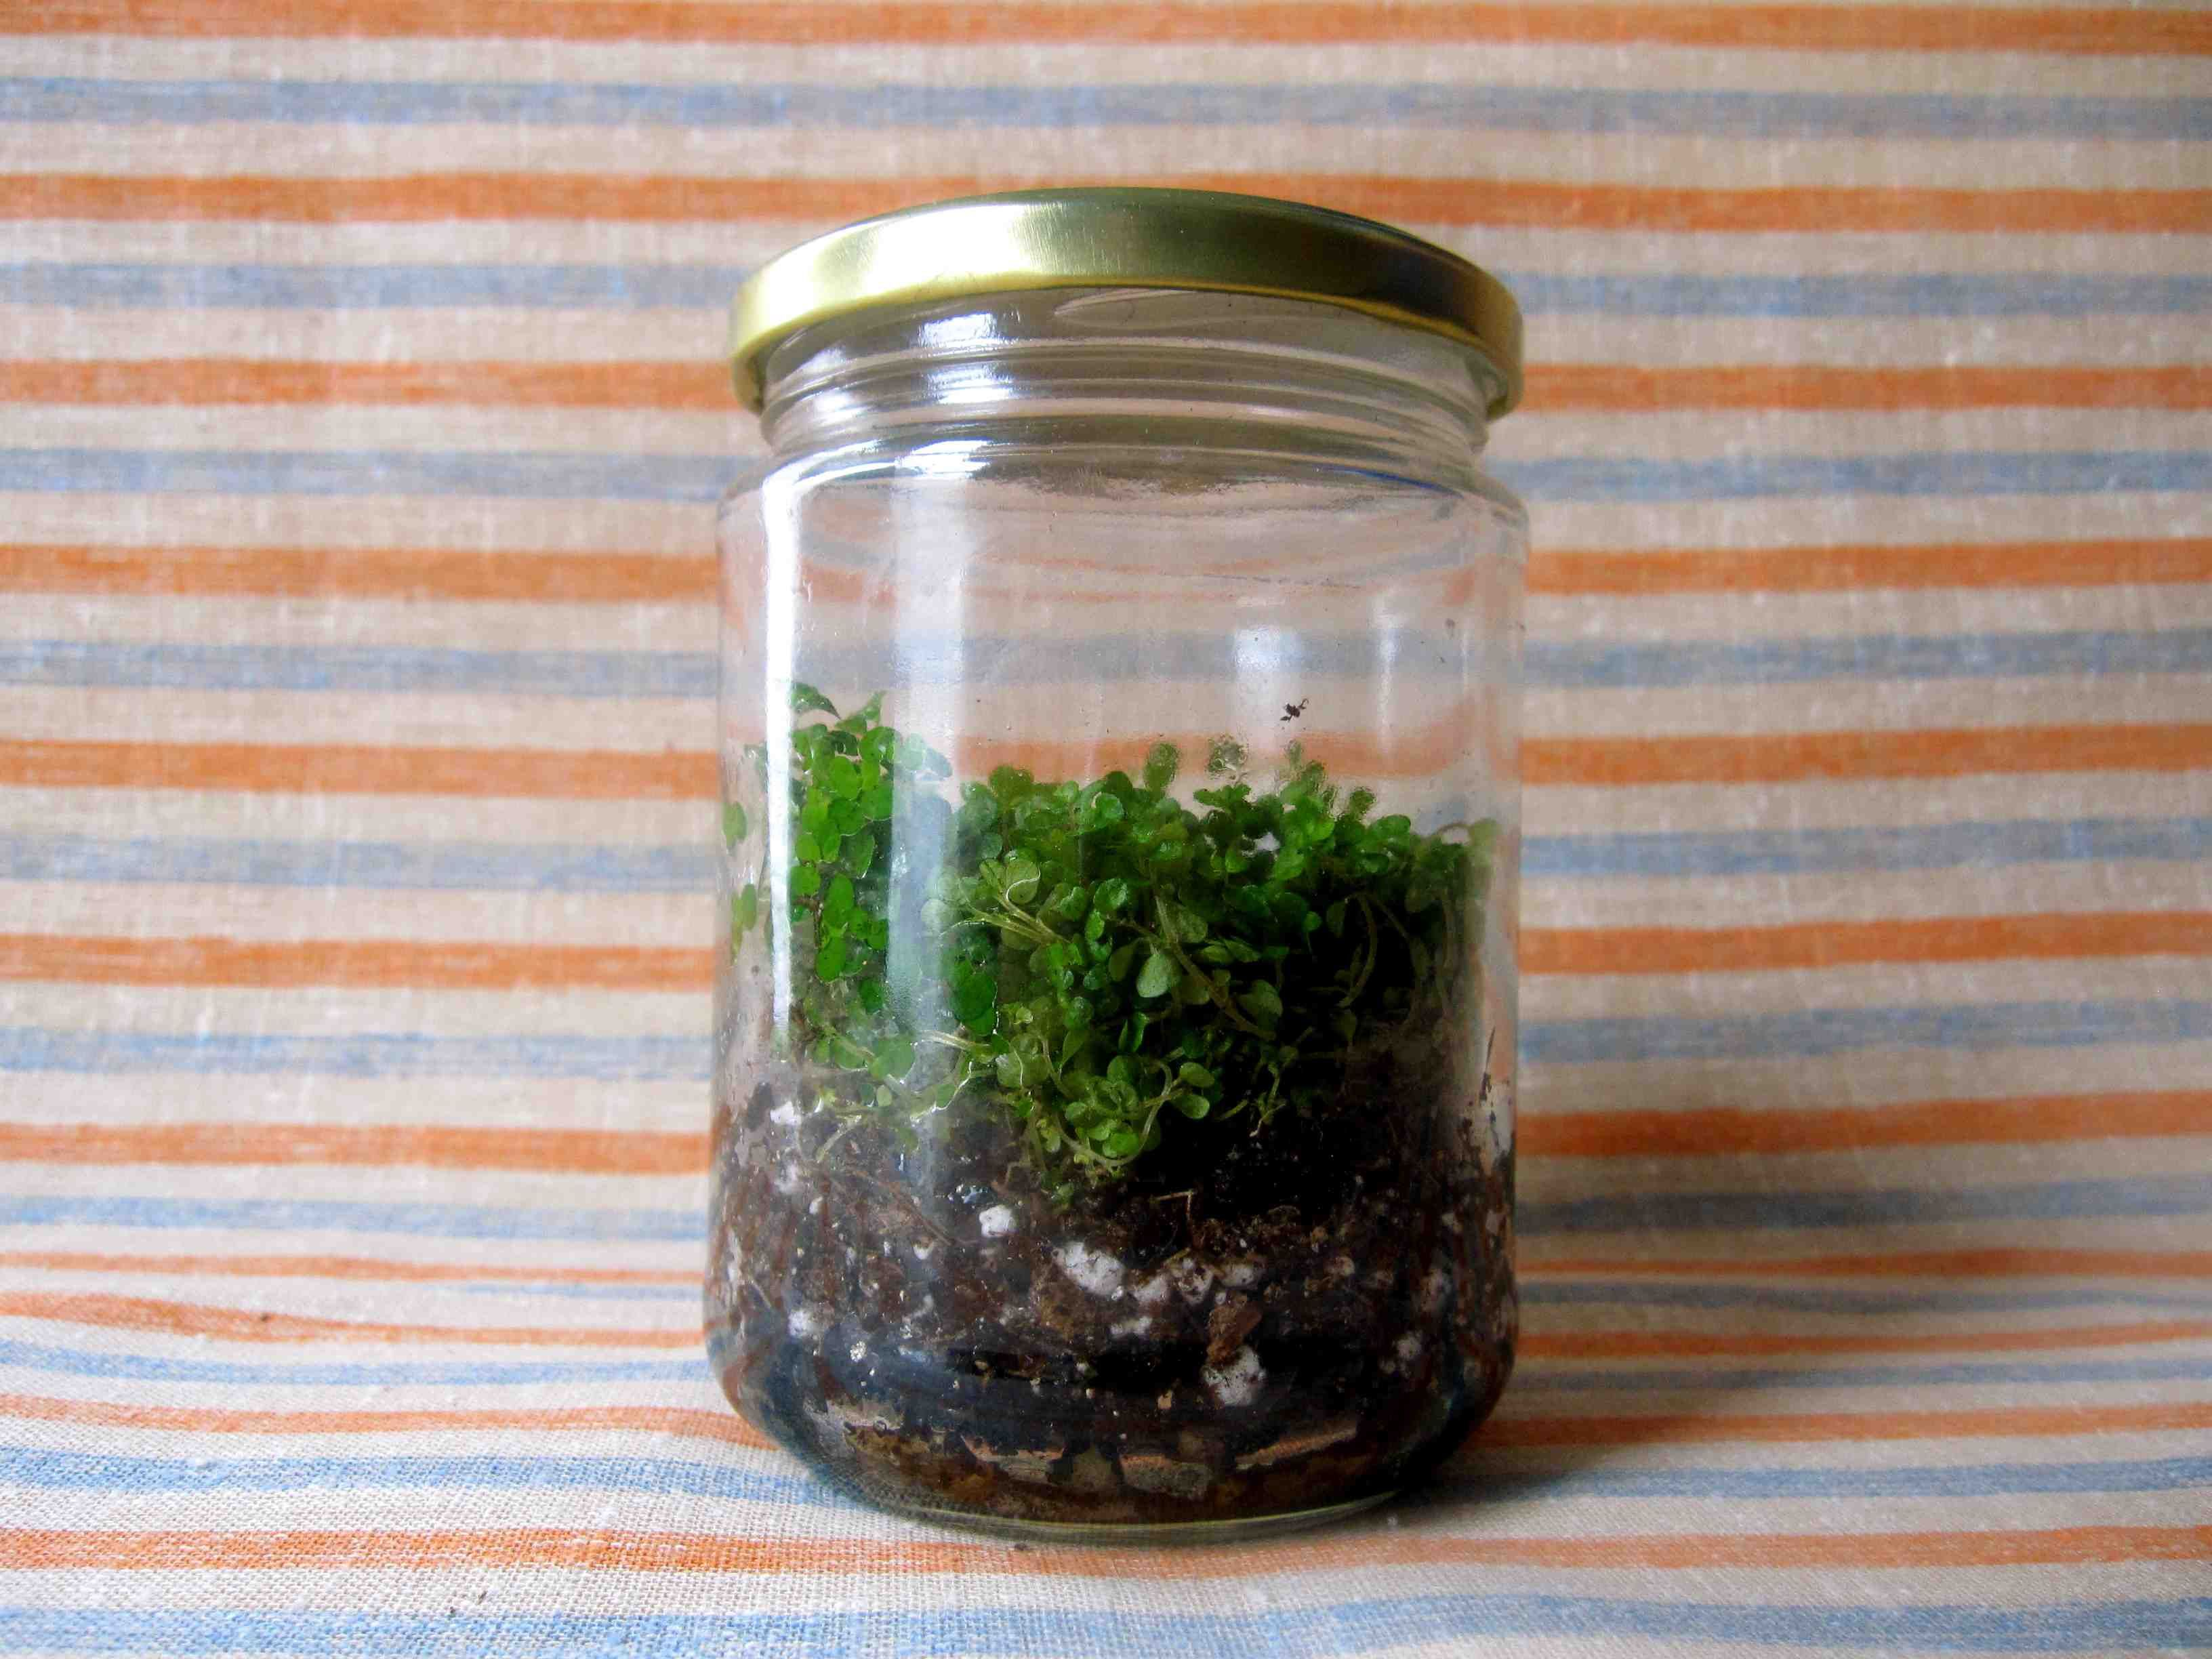 Daisy flower garden journey terrarium project for kids daisy